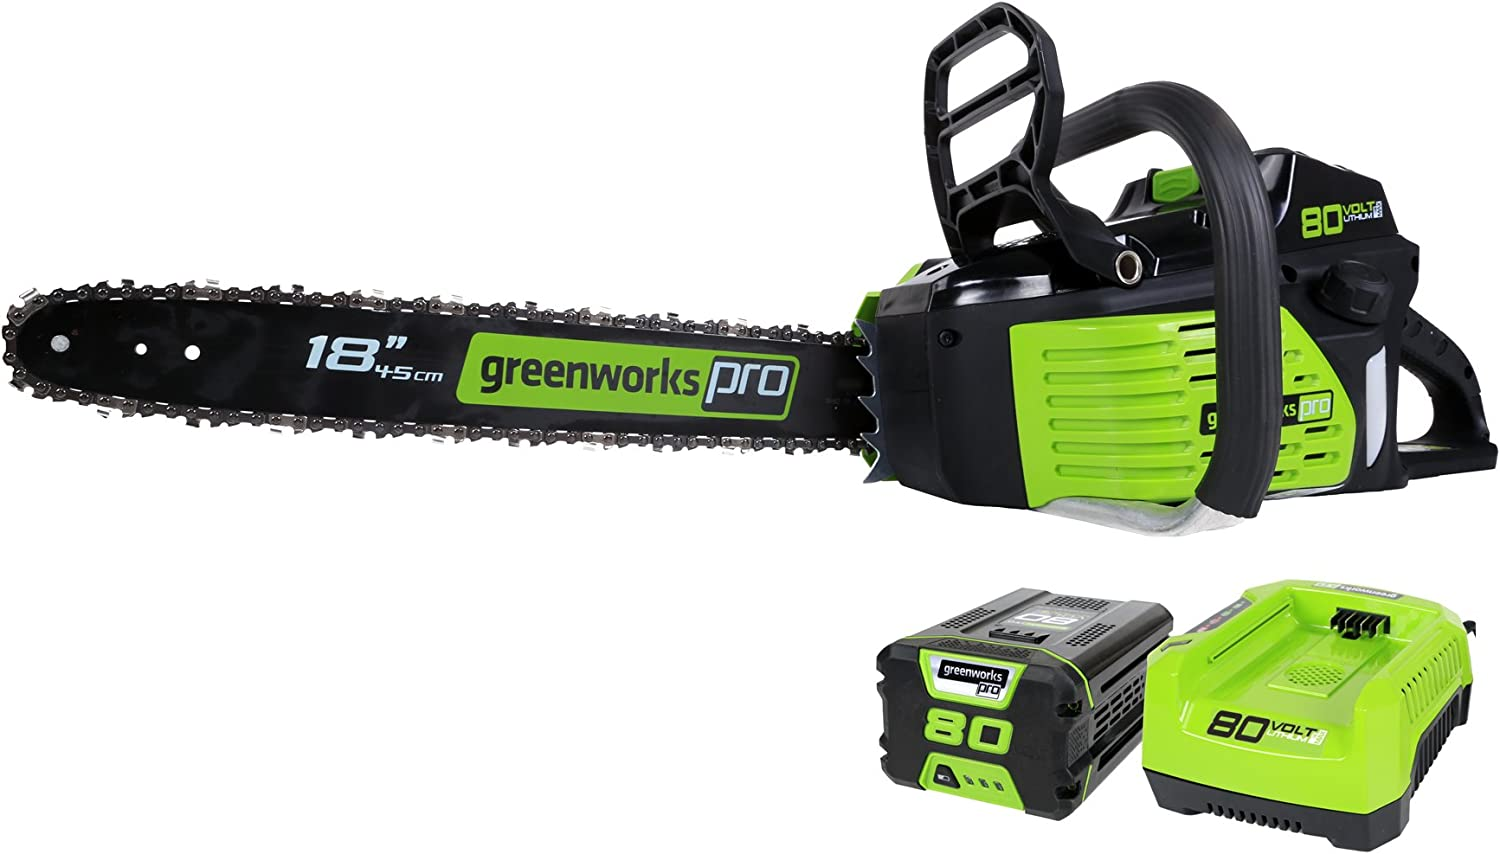 5. Greenworks Pro GCS80420 18-Inch Cordless Chainsaw